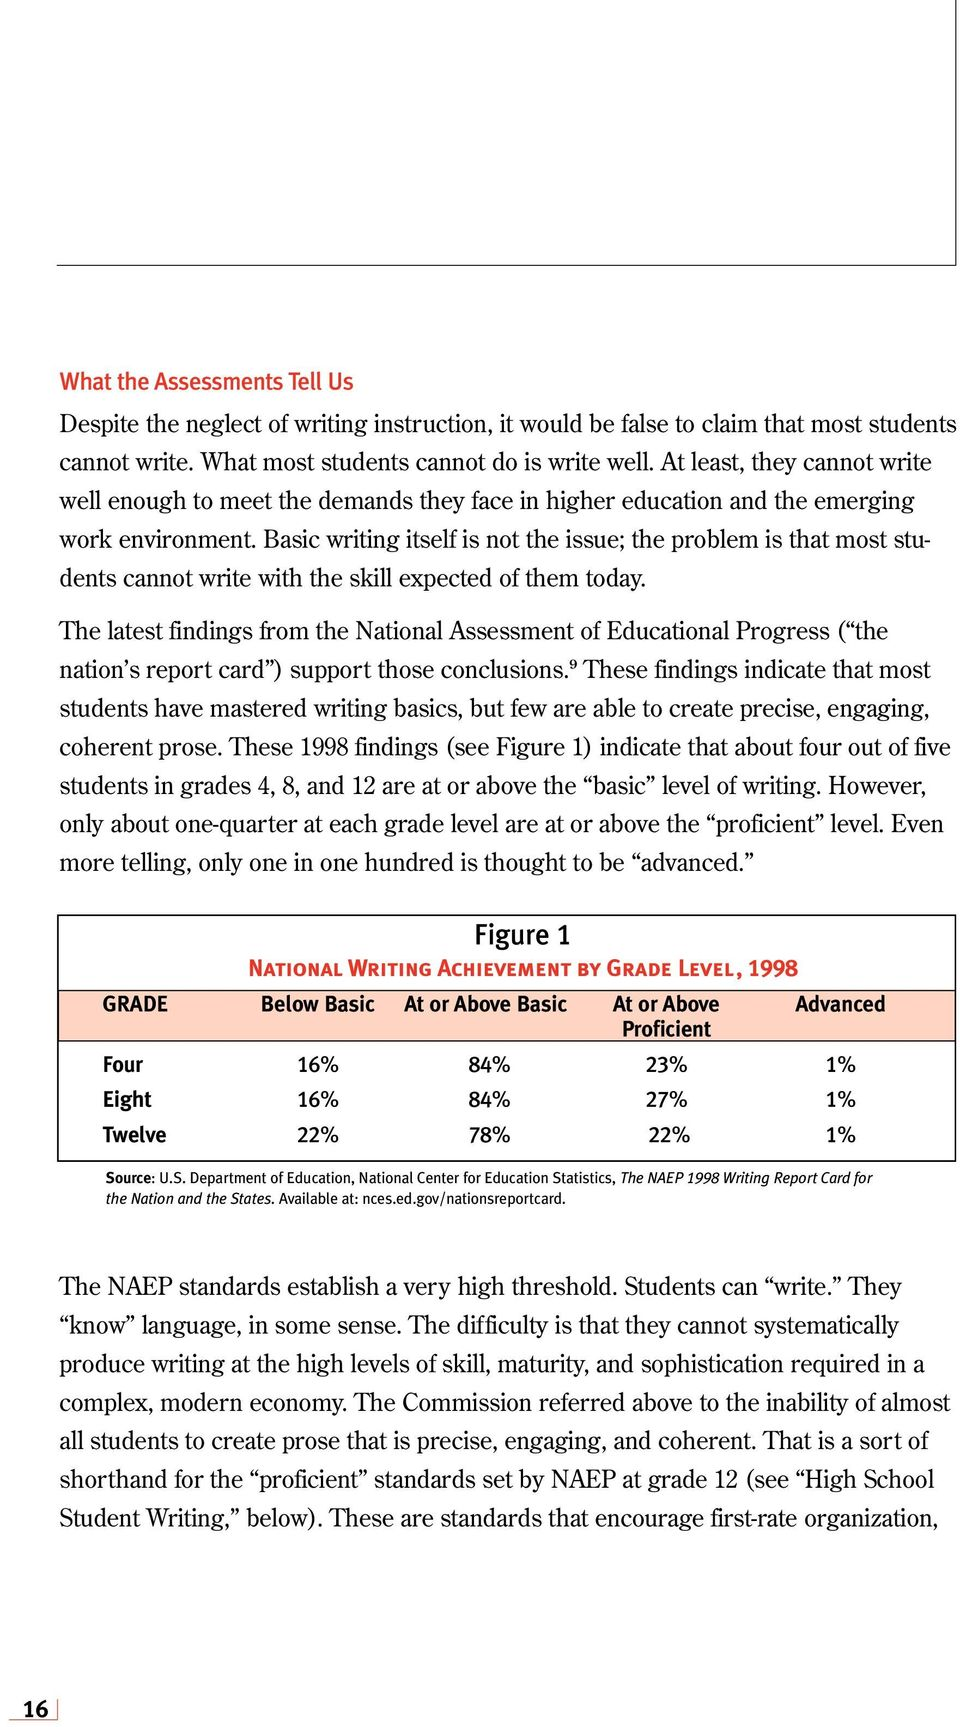 Basic writing itself is not the issue; the problem is that most students cannot write with the skill expected of them today.